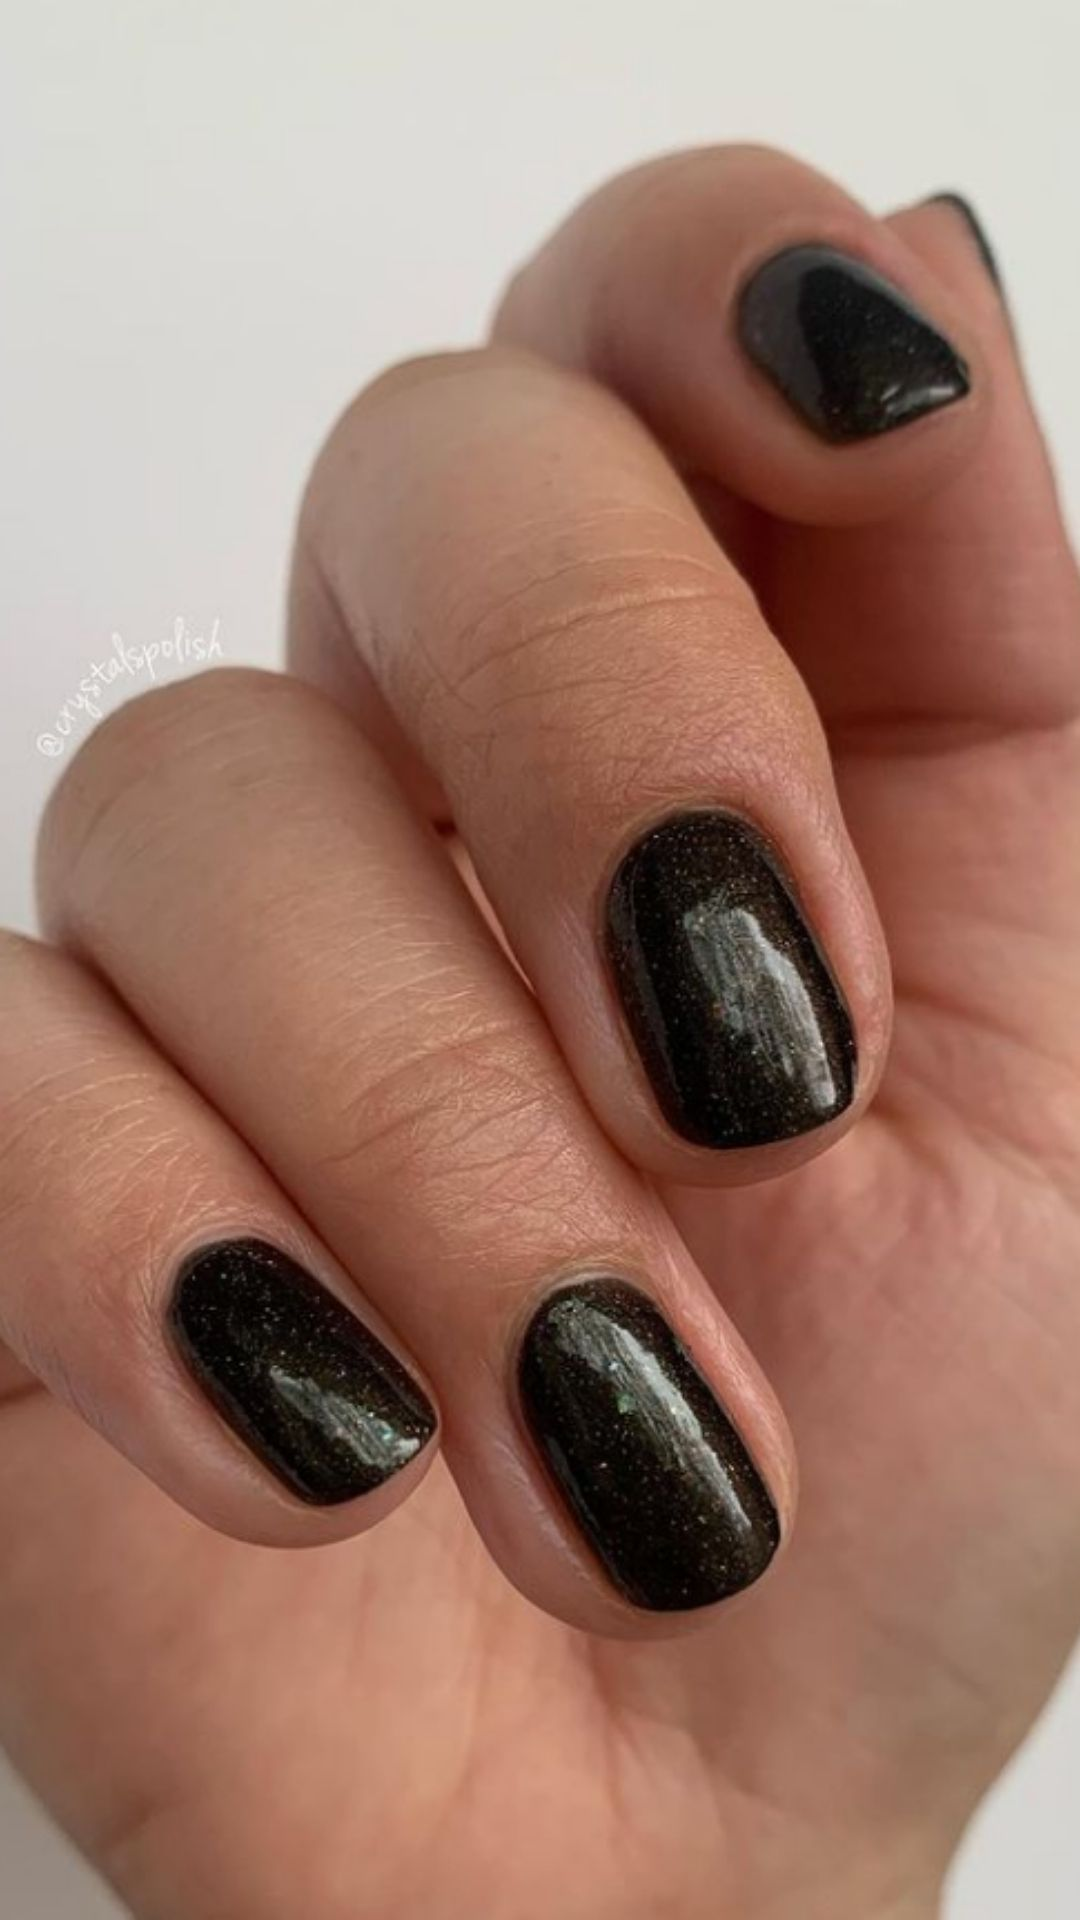 Trendy Fall nail colors 2021 to inspire your autumn nail designs